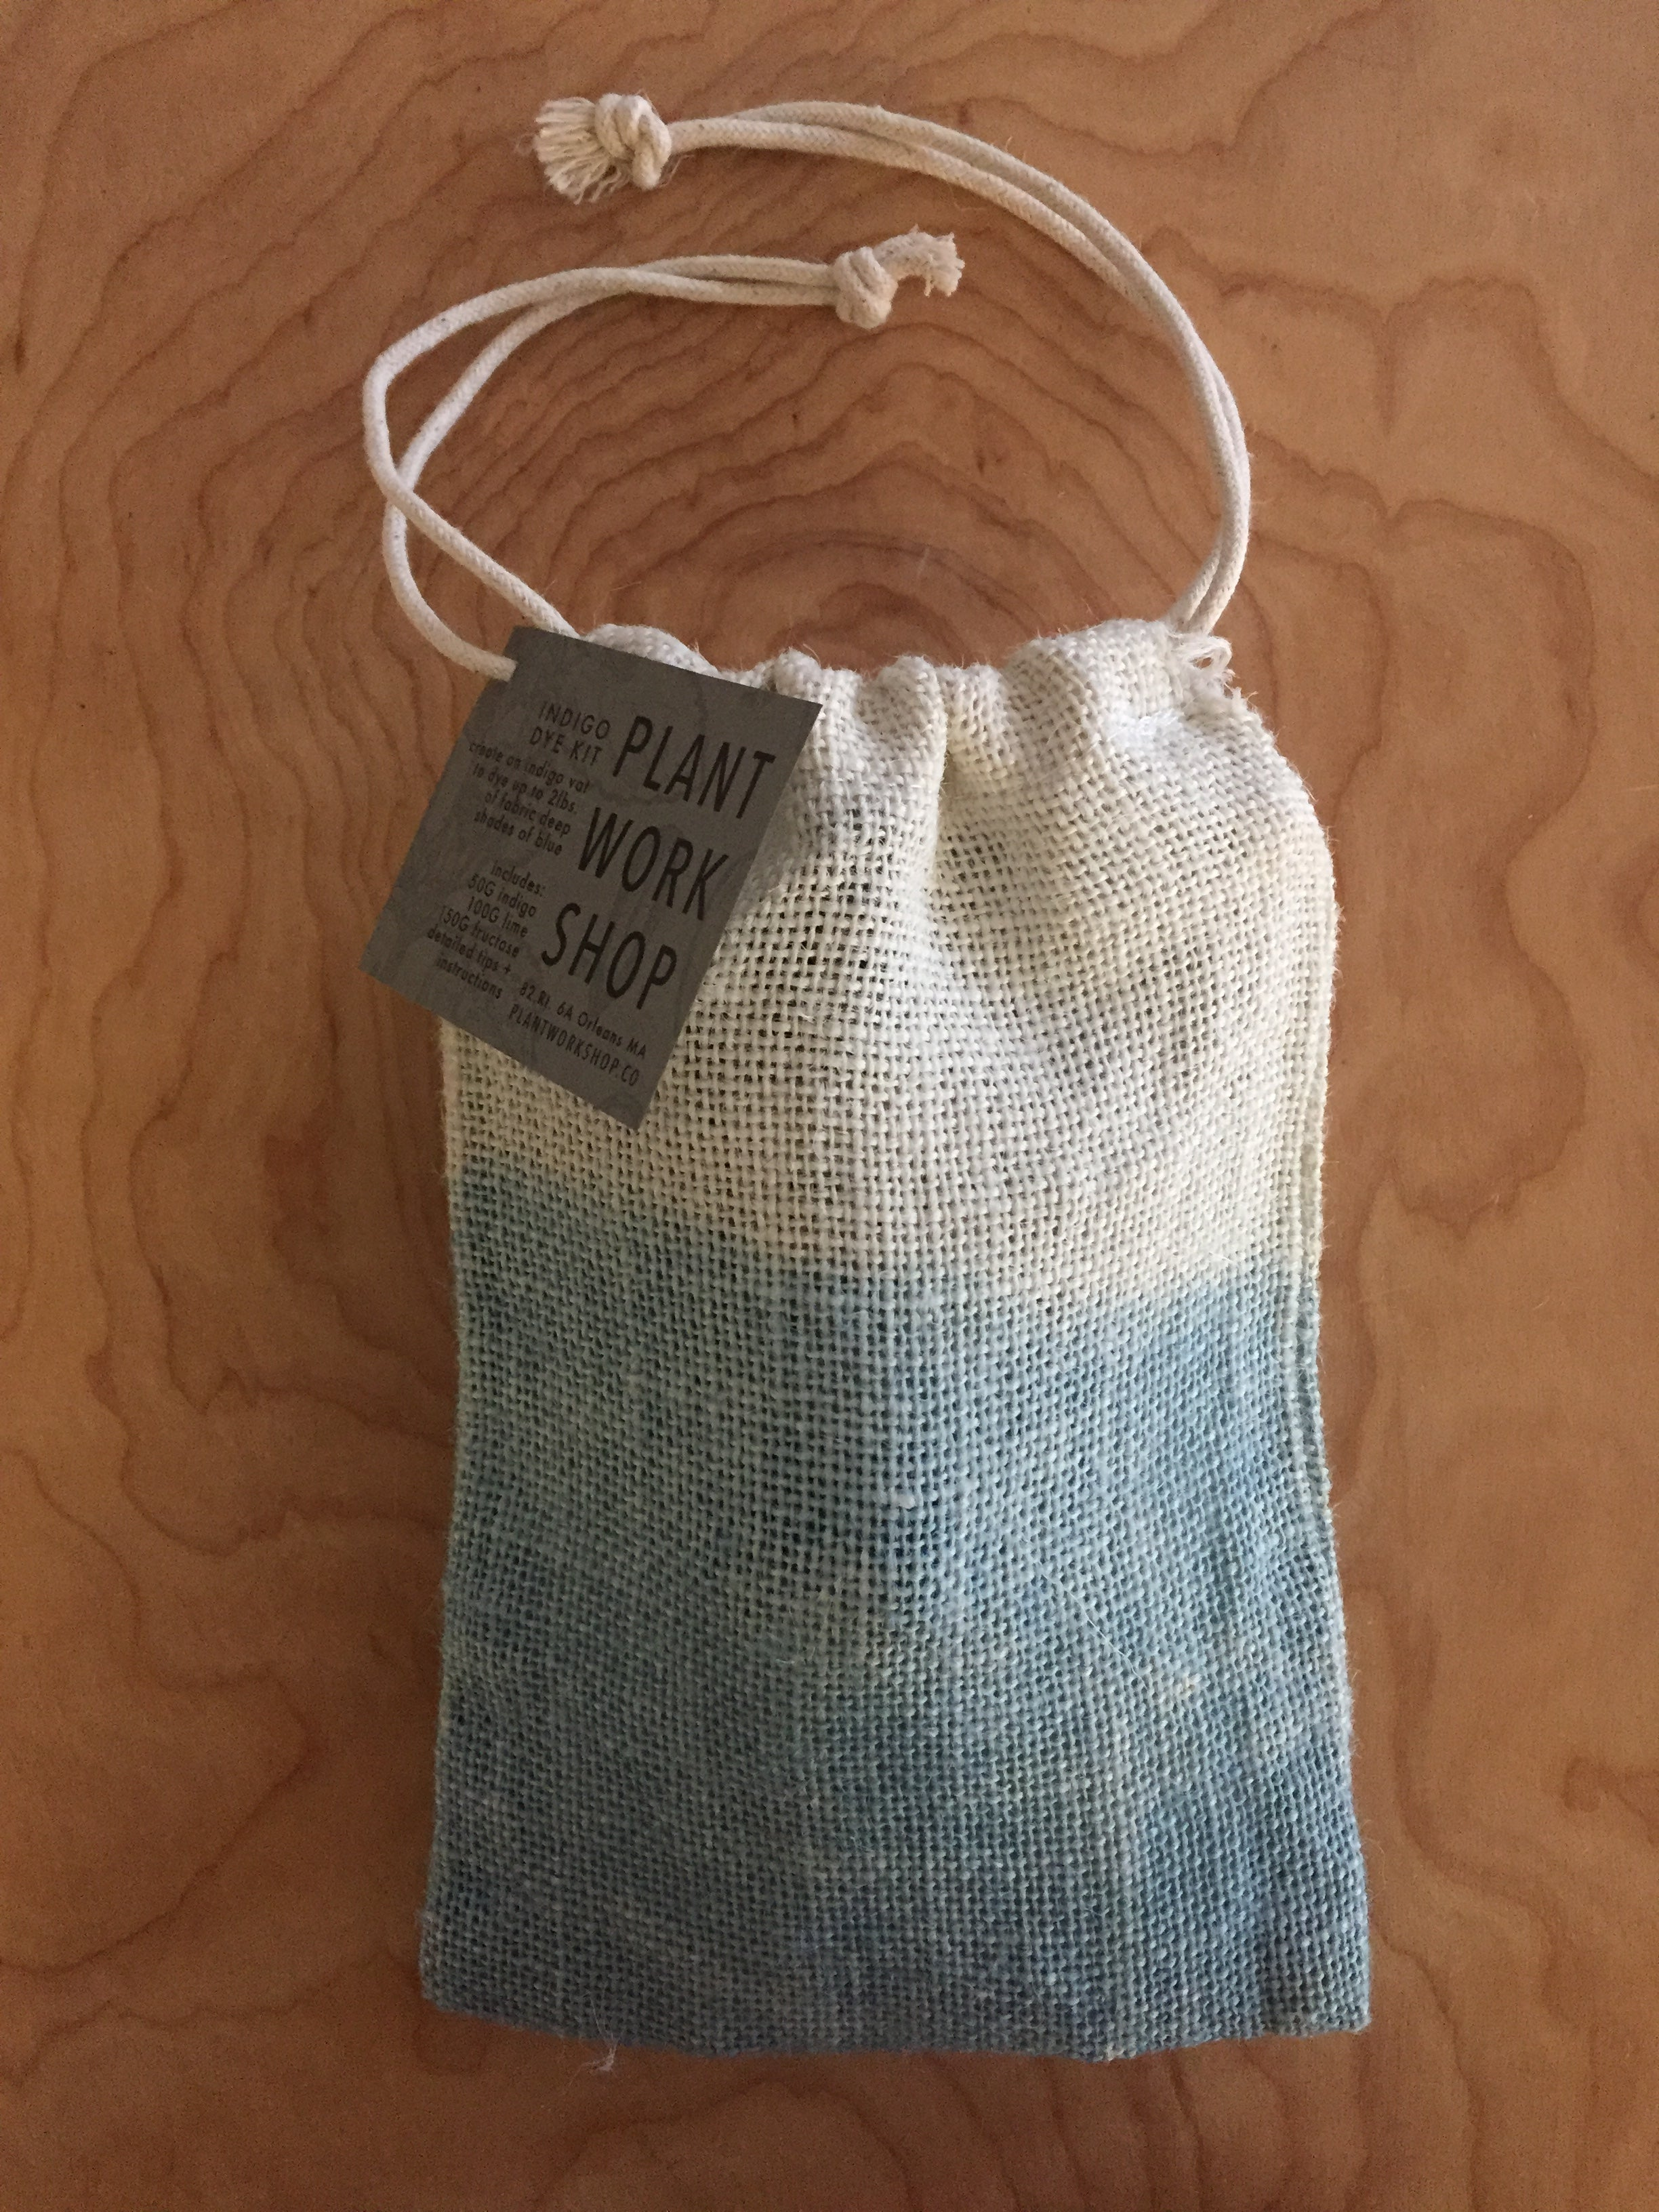 WORKSHOP: dyeing with an indigo vat